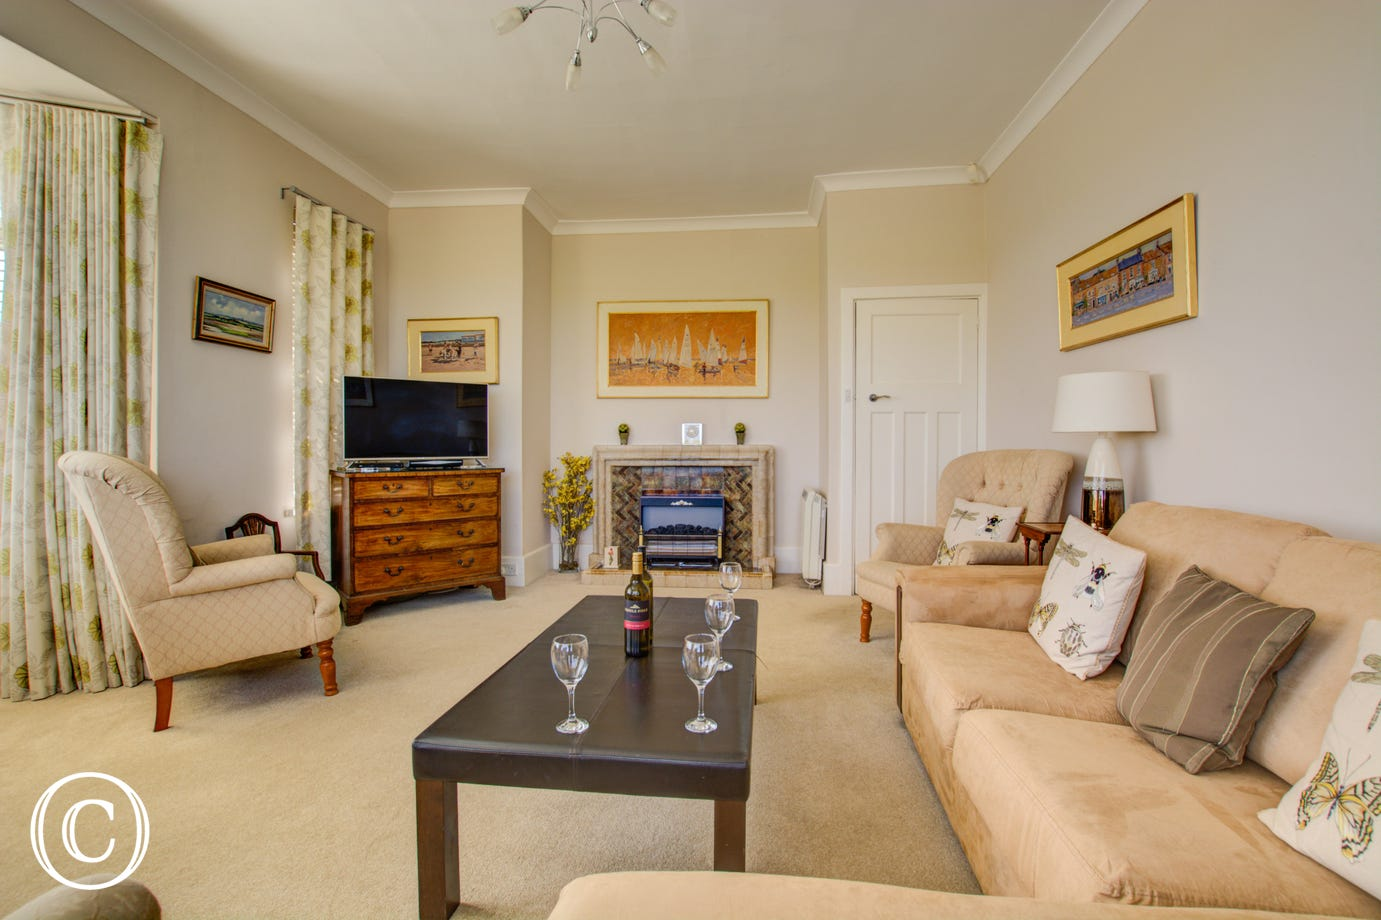 Ground Floor spacious Sitting Room with comfortable seating